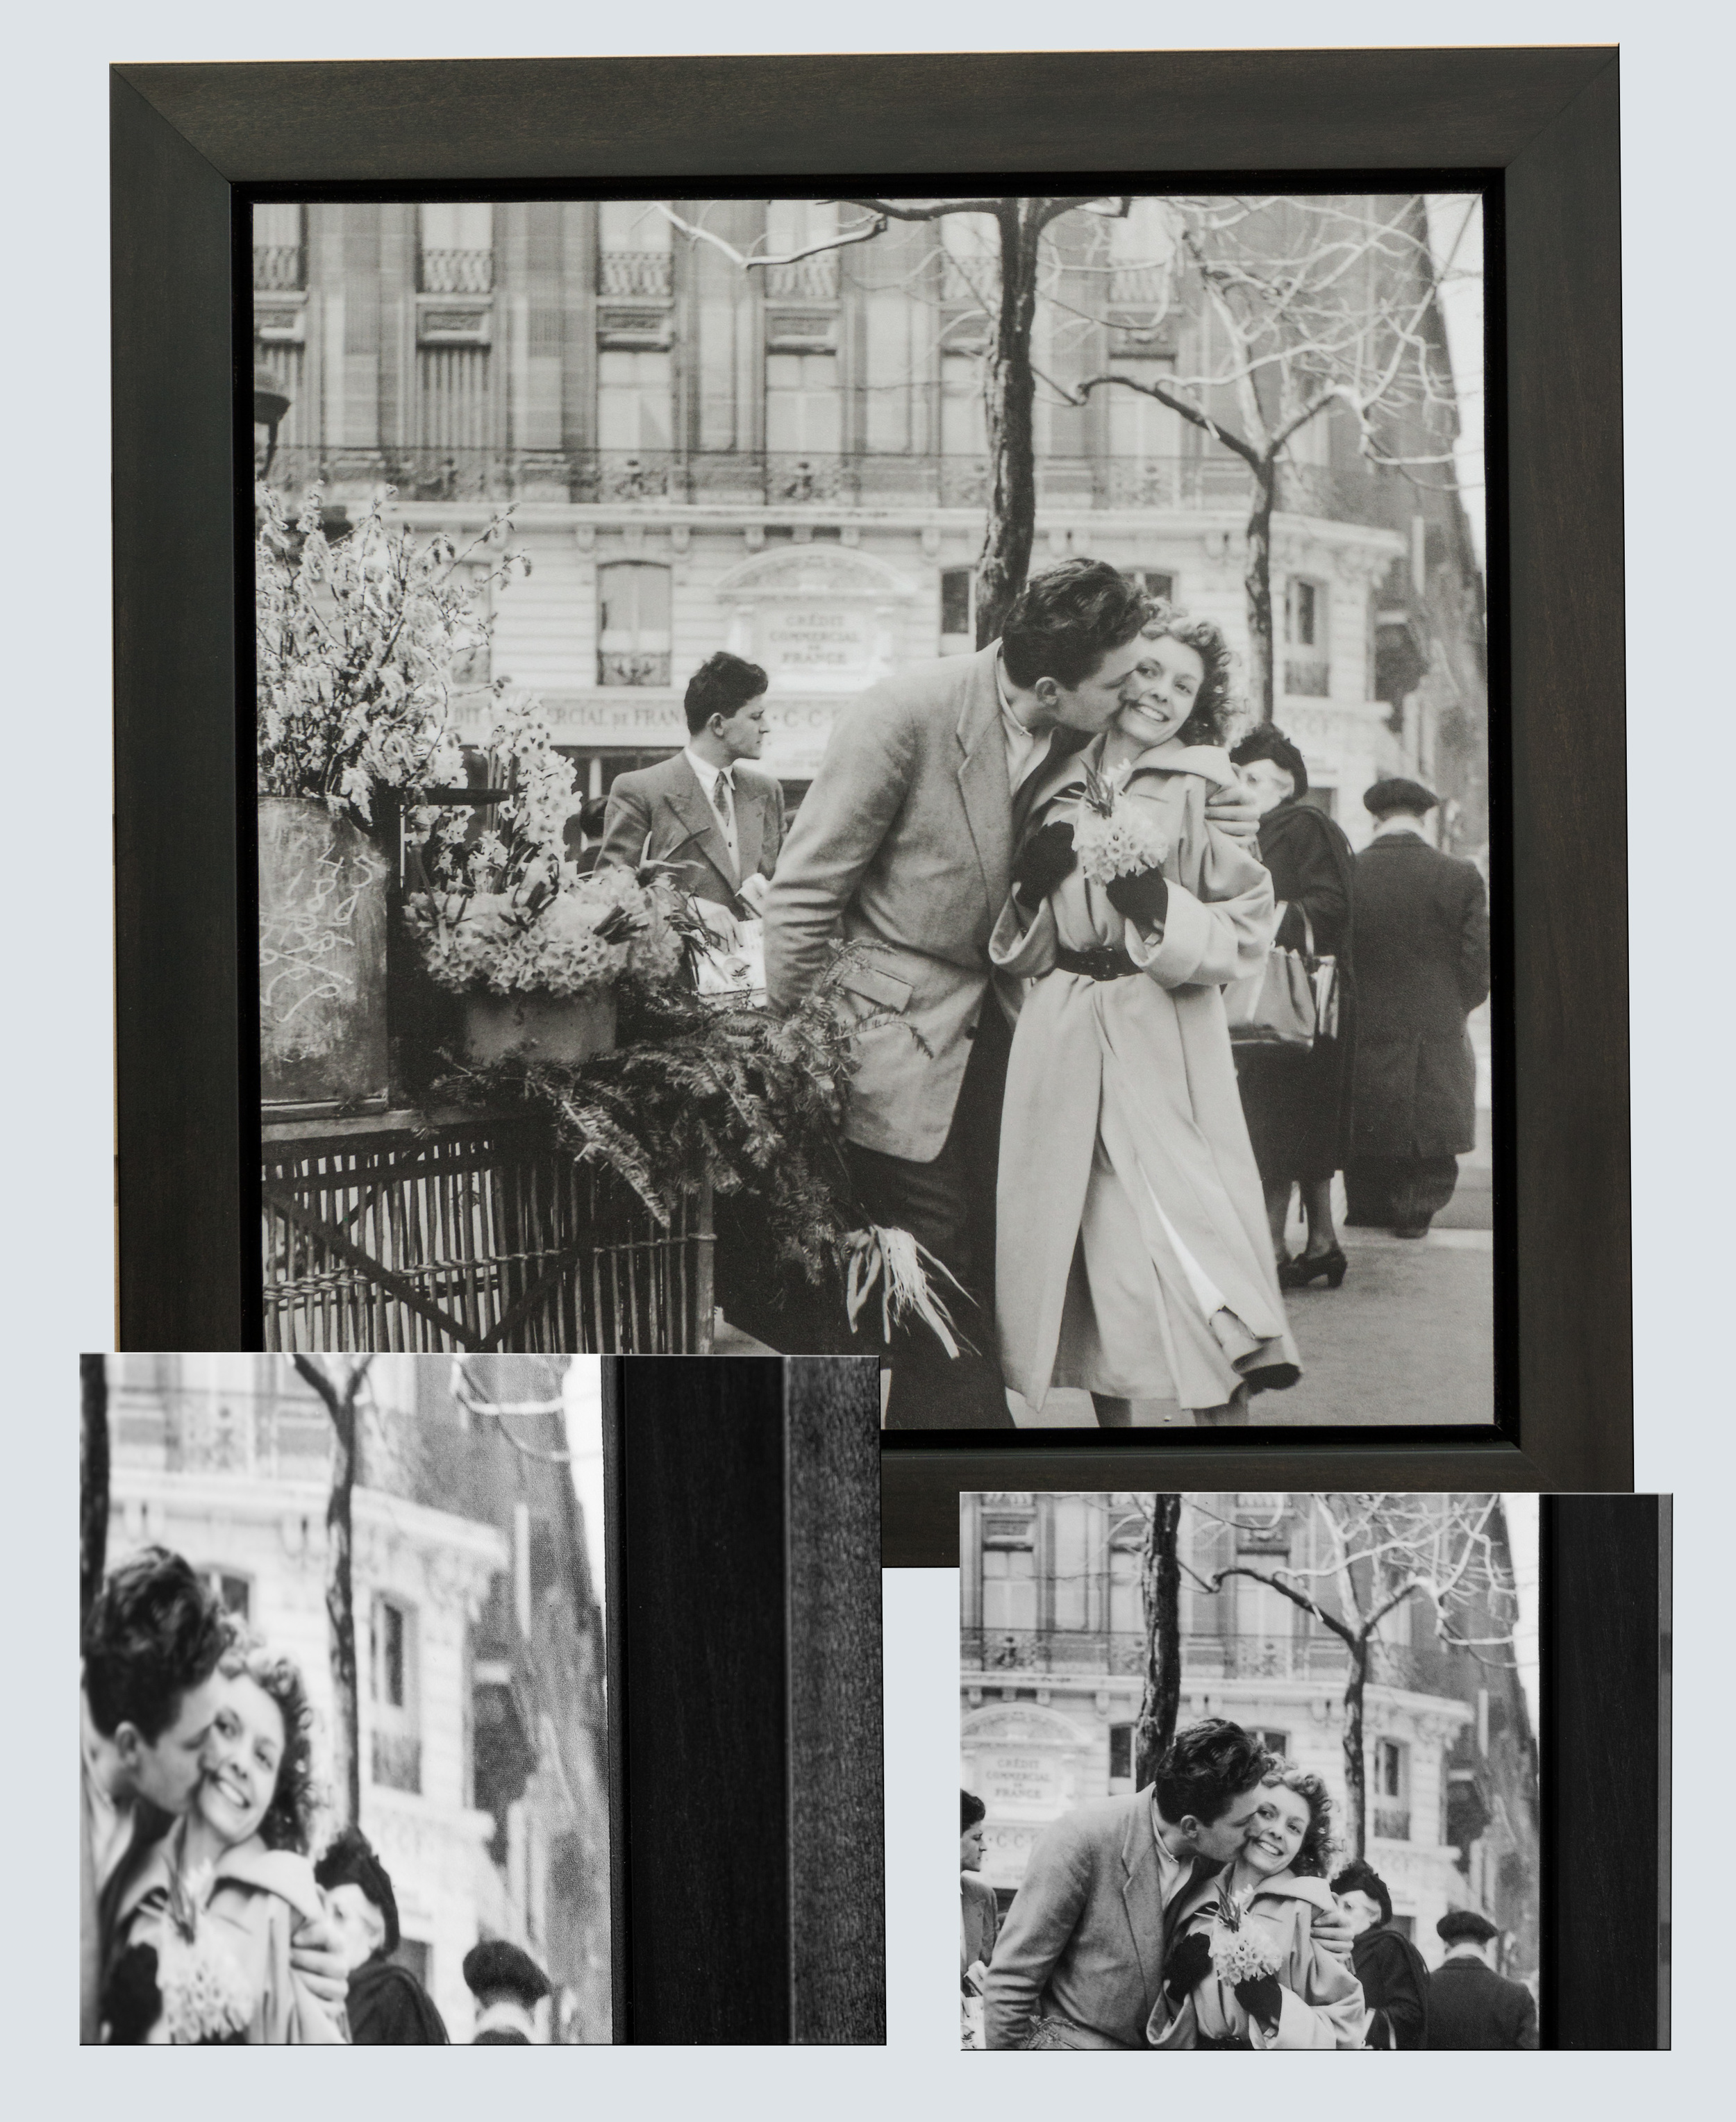 Frame mount style of plaque mounting-1940's New York street scene.